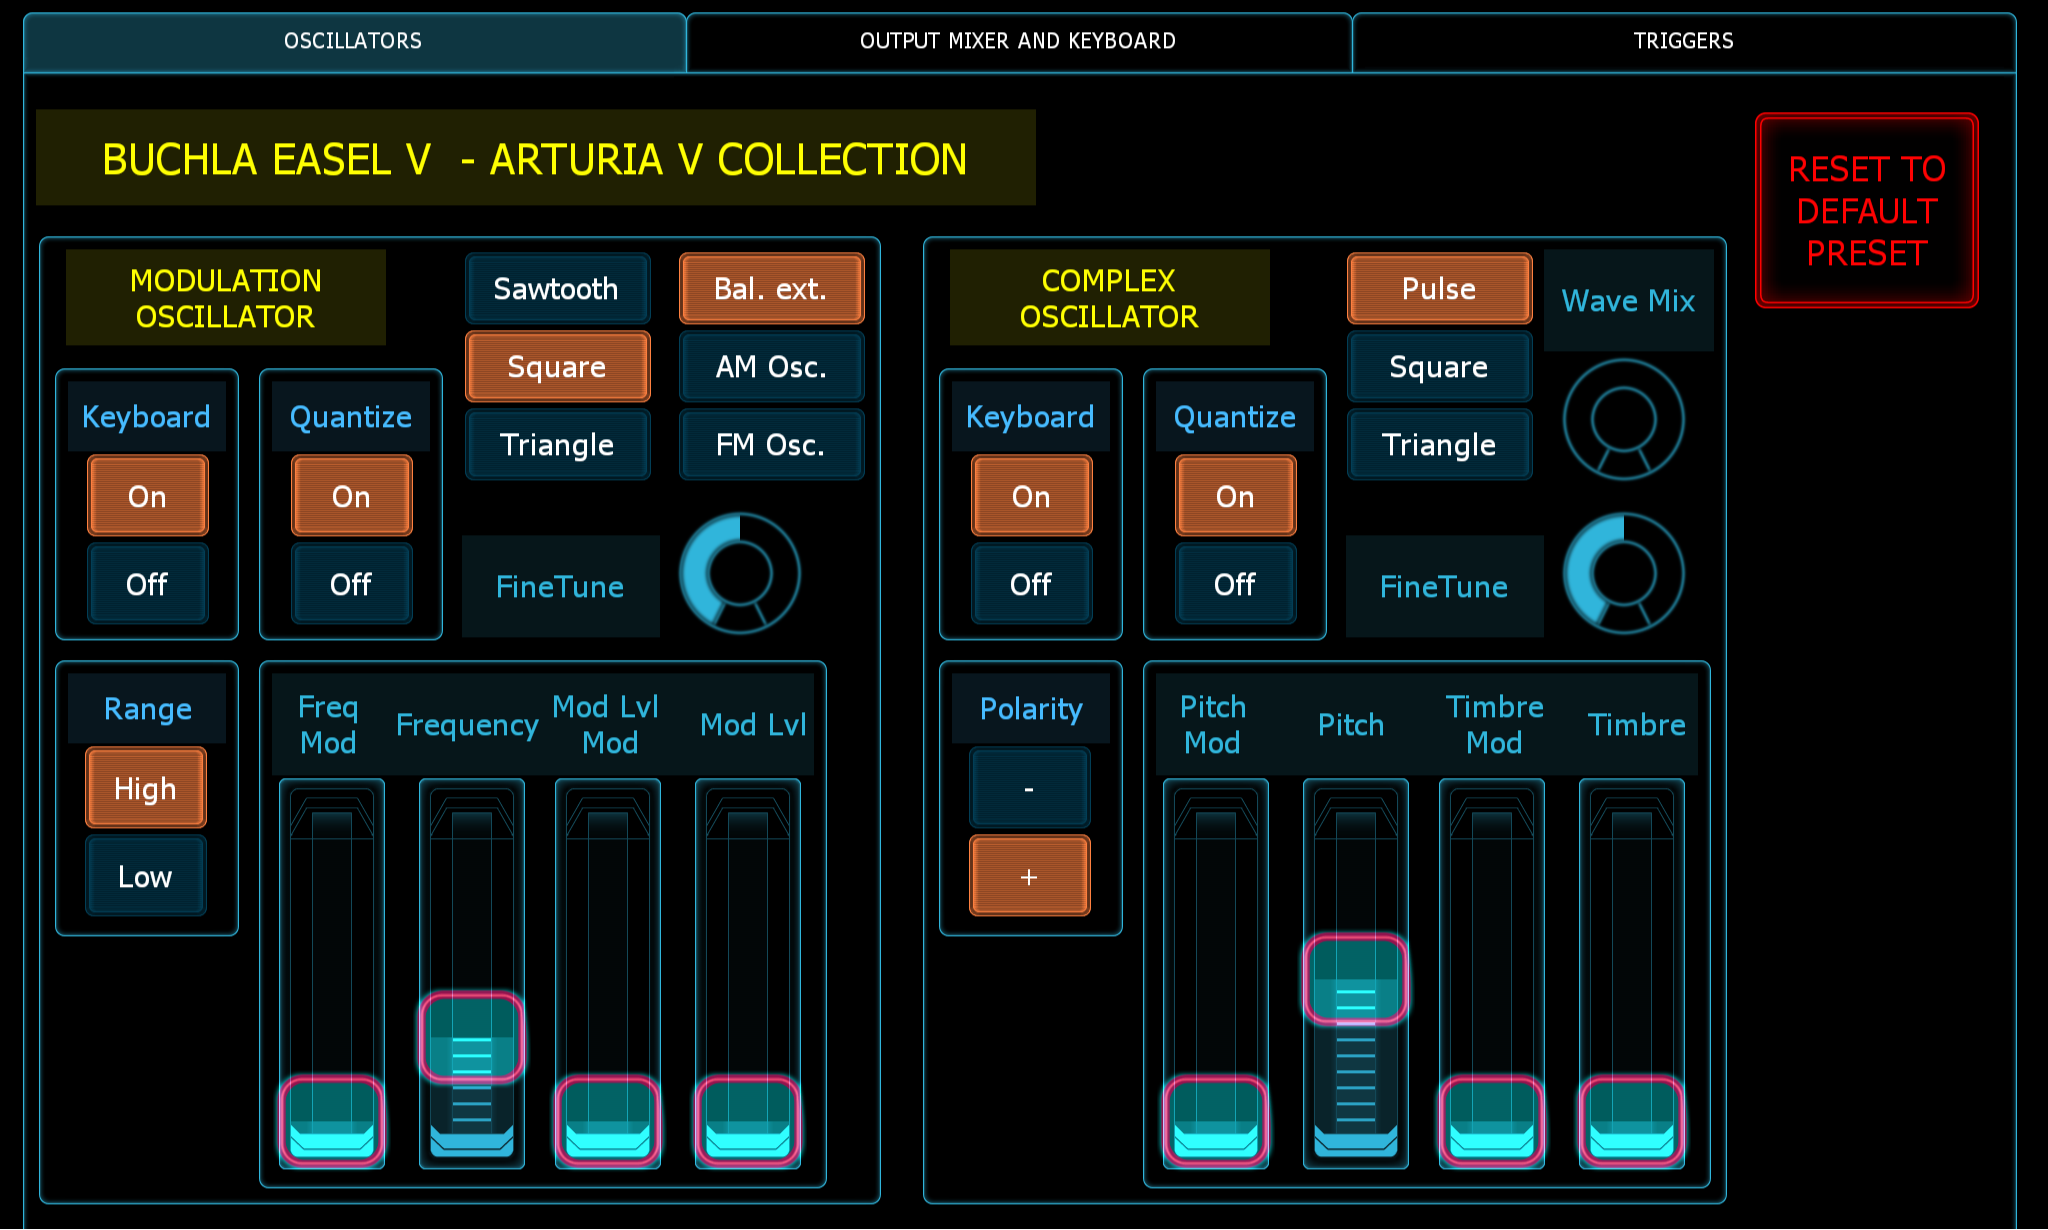 Picture of the Lemur Midi Controller GUI for the Arturia Buchla Easel V virtual instrument